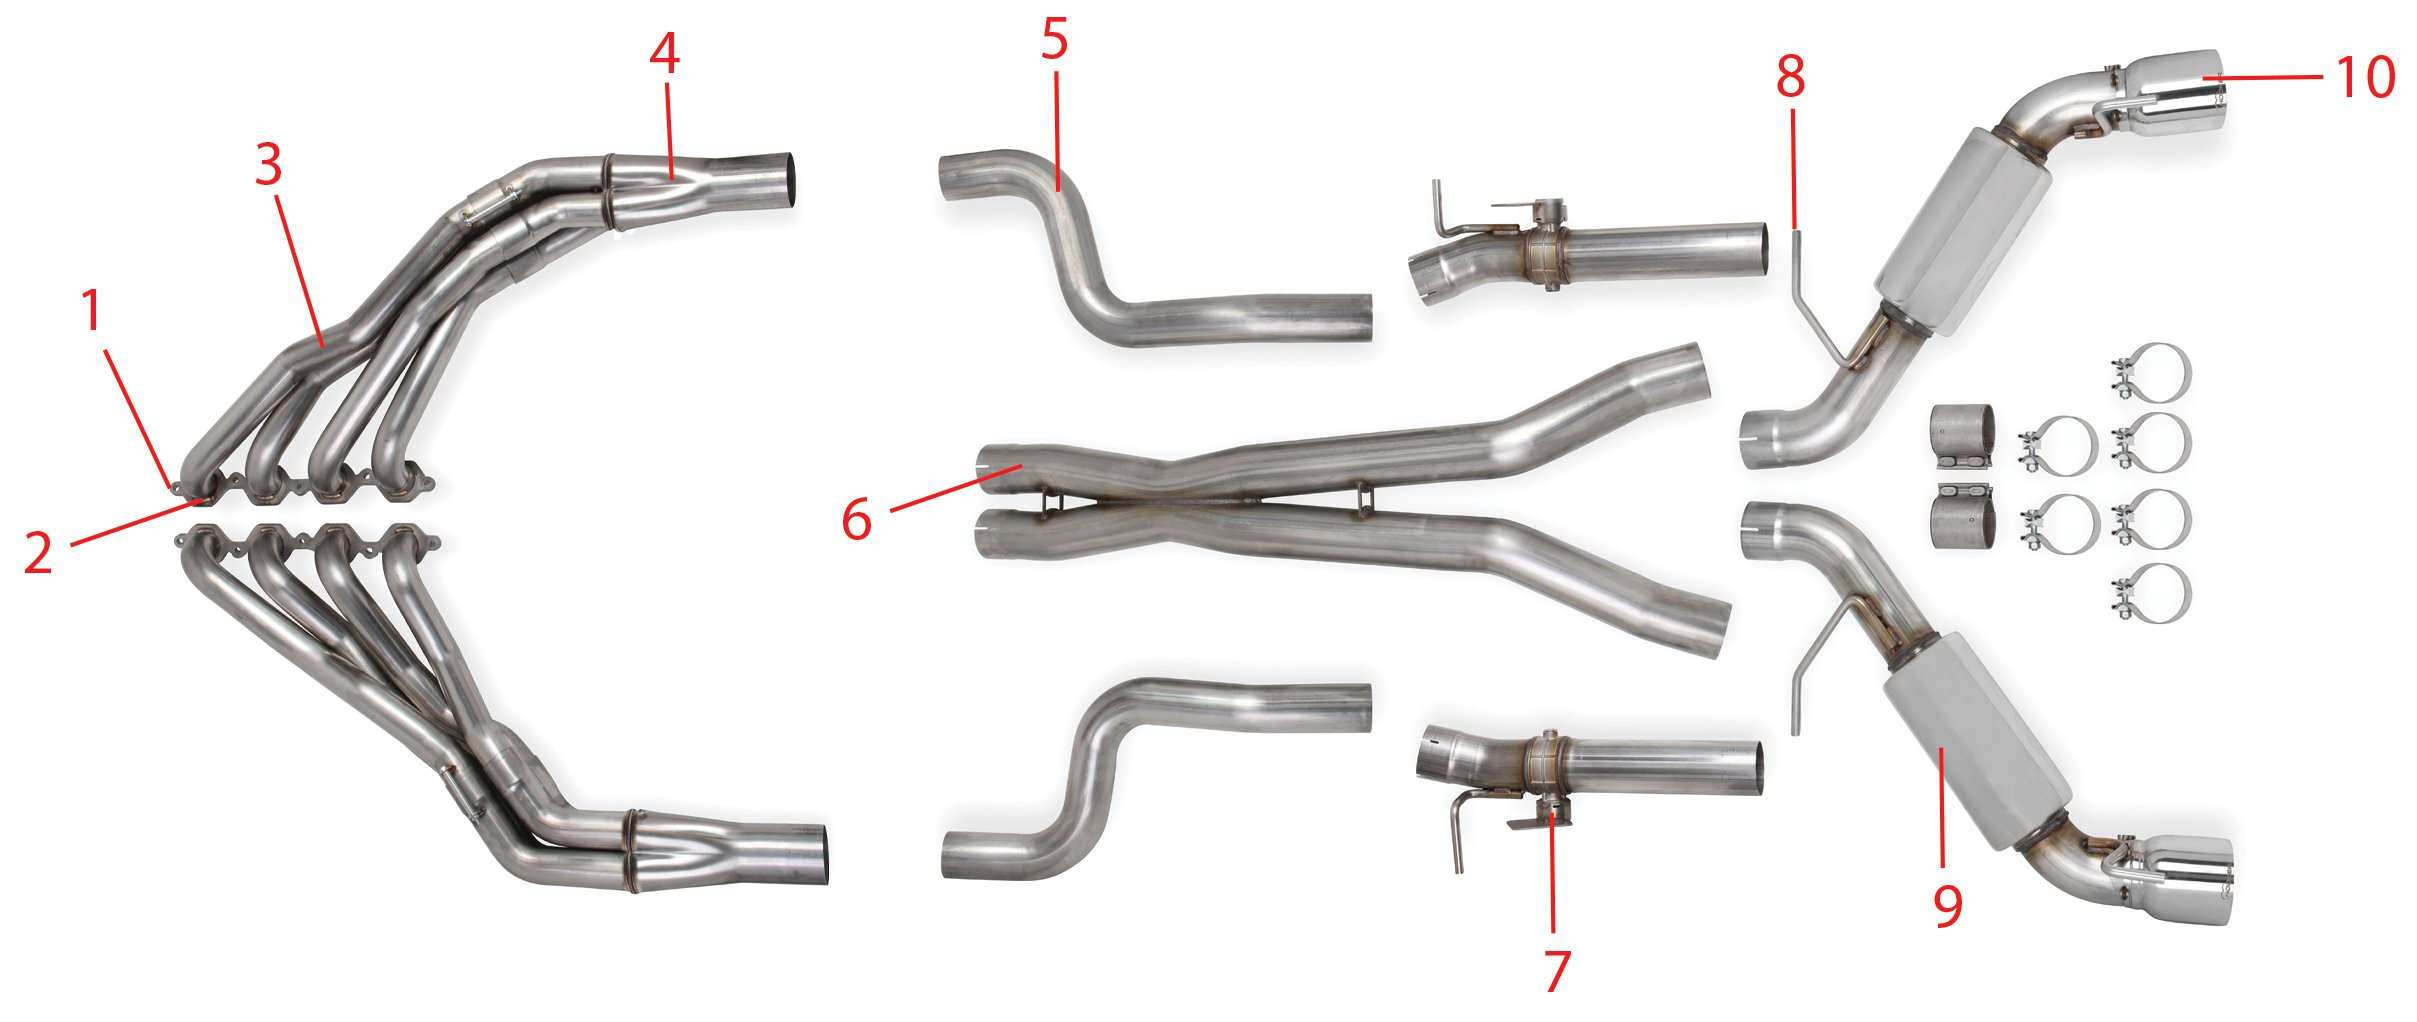 2002 chevy trailblazer exhaust system diagram